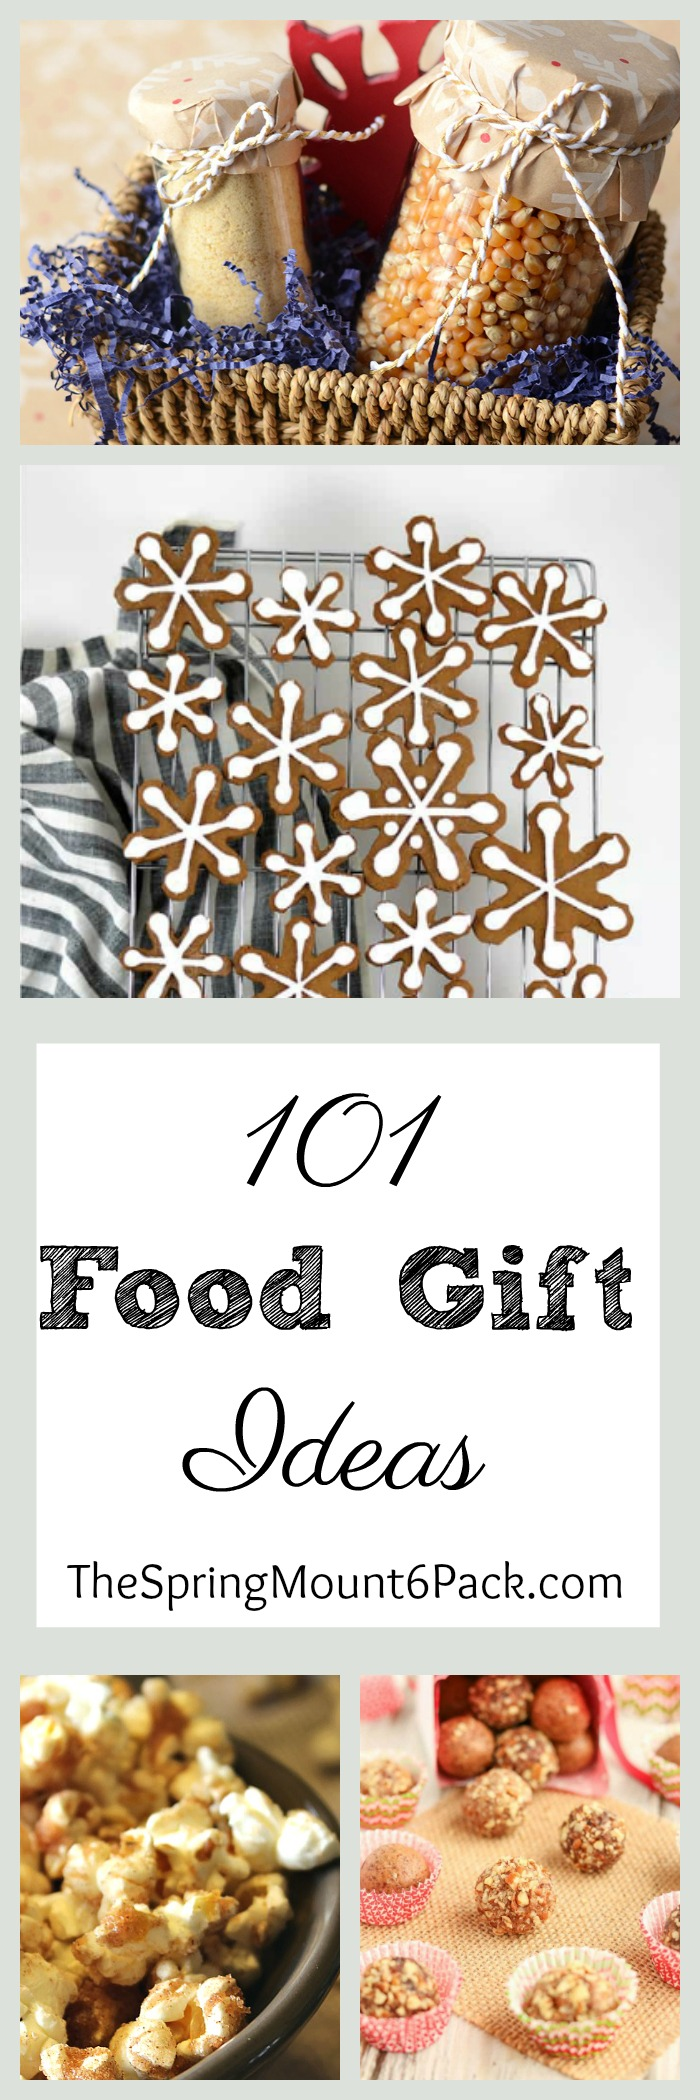 Looking for food gift ideas? Here are 101 food gift ideas that will make anyone on your Christmas list happy this holiday season.